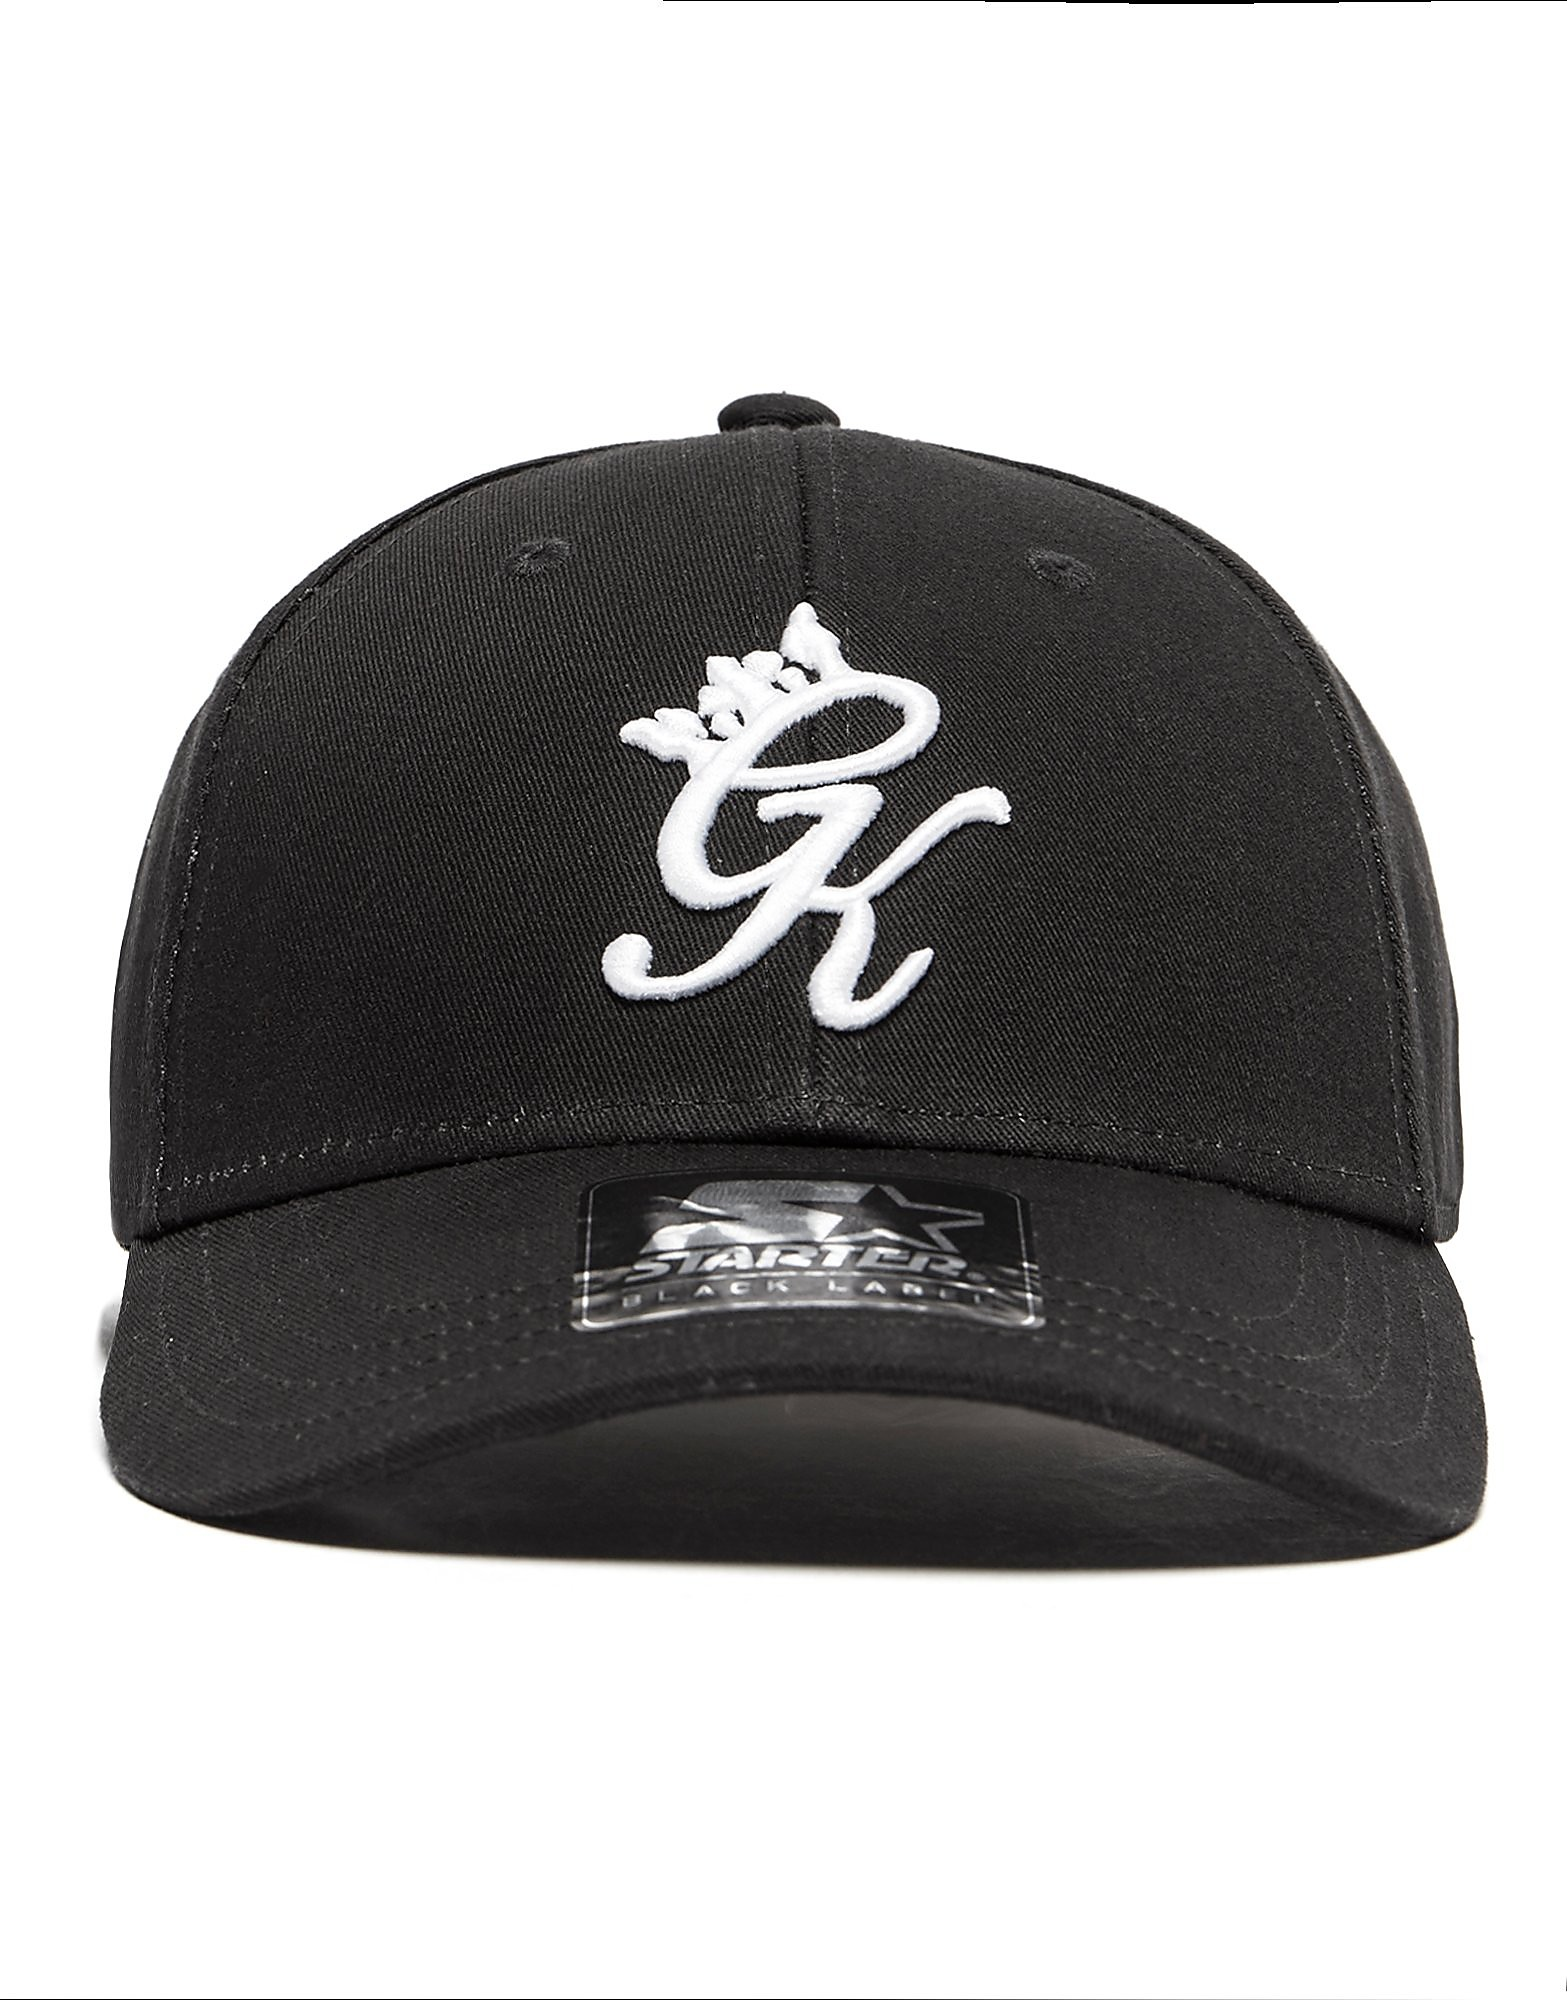 Gym King Cap